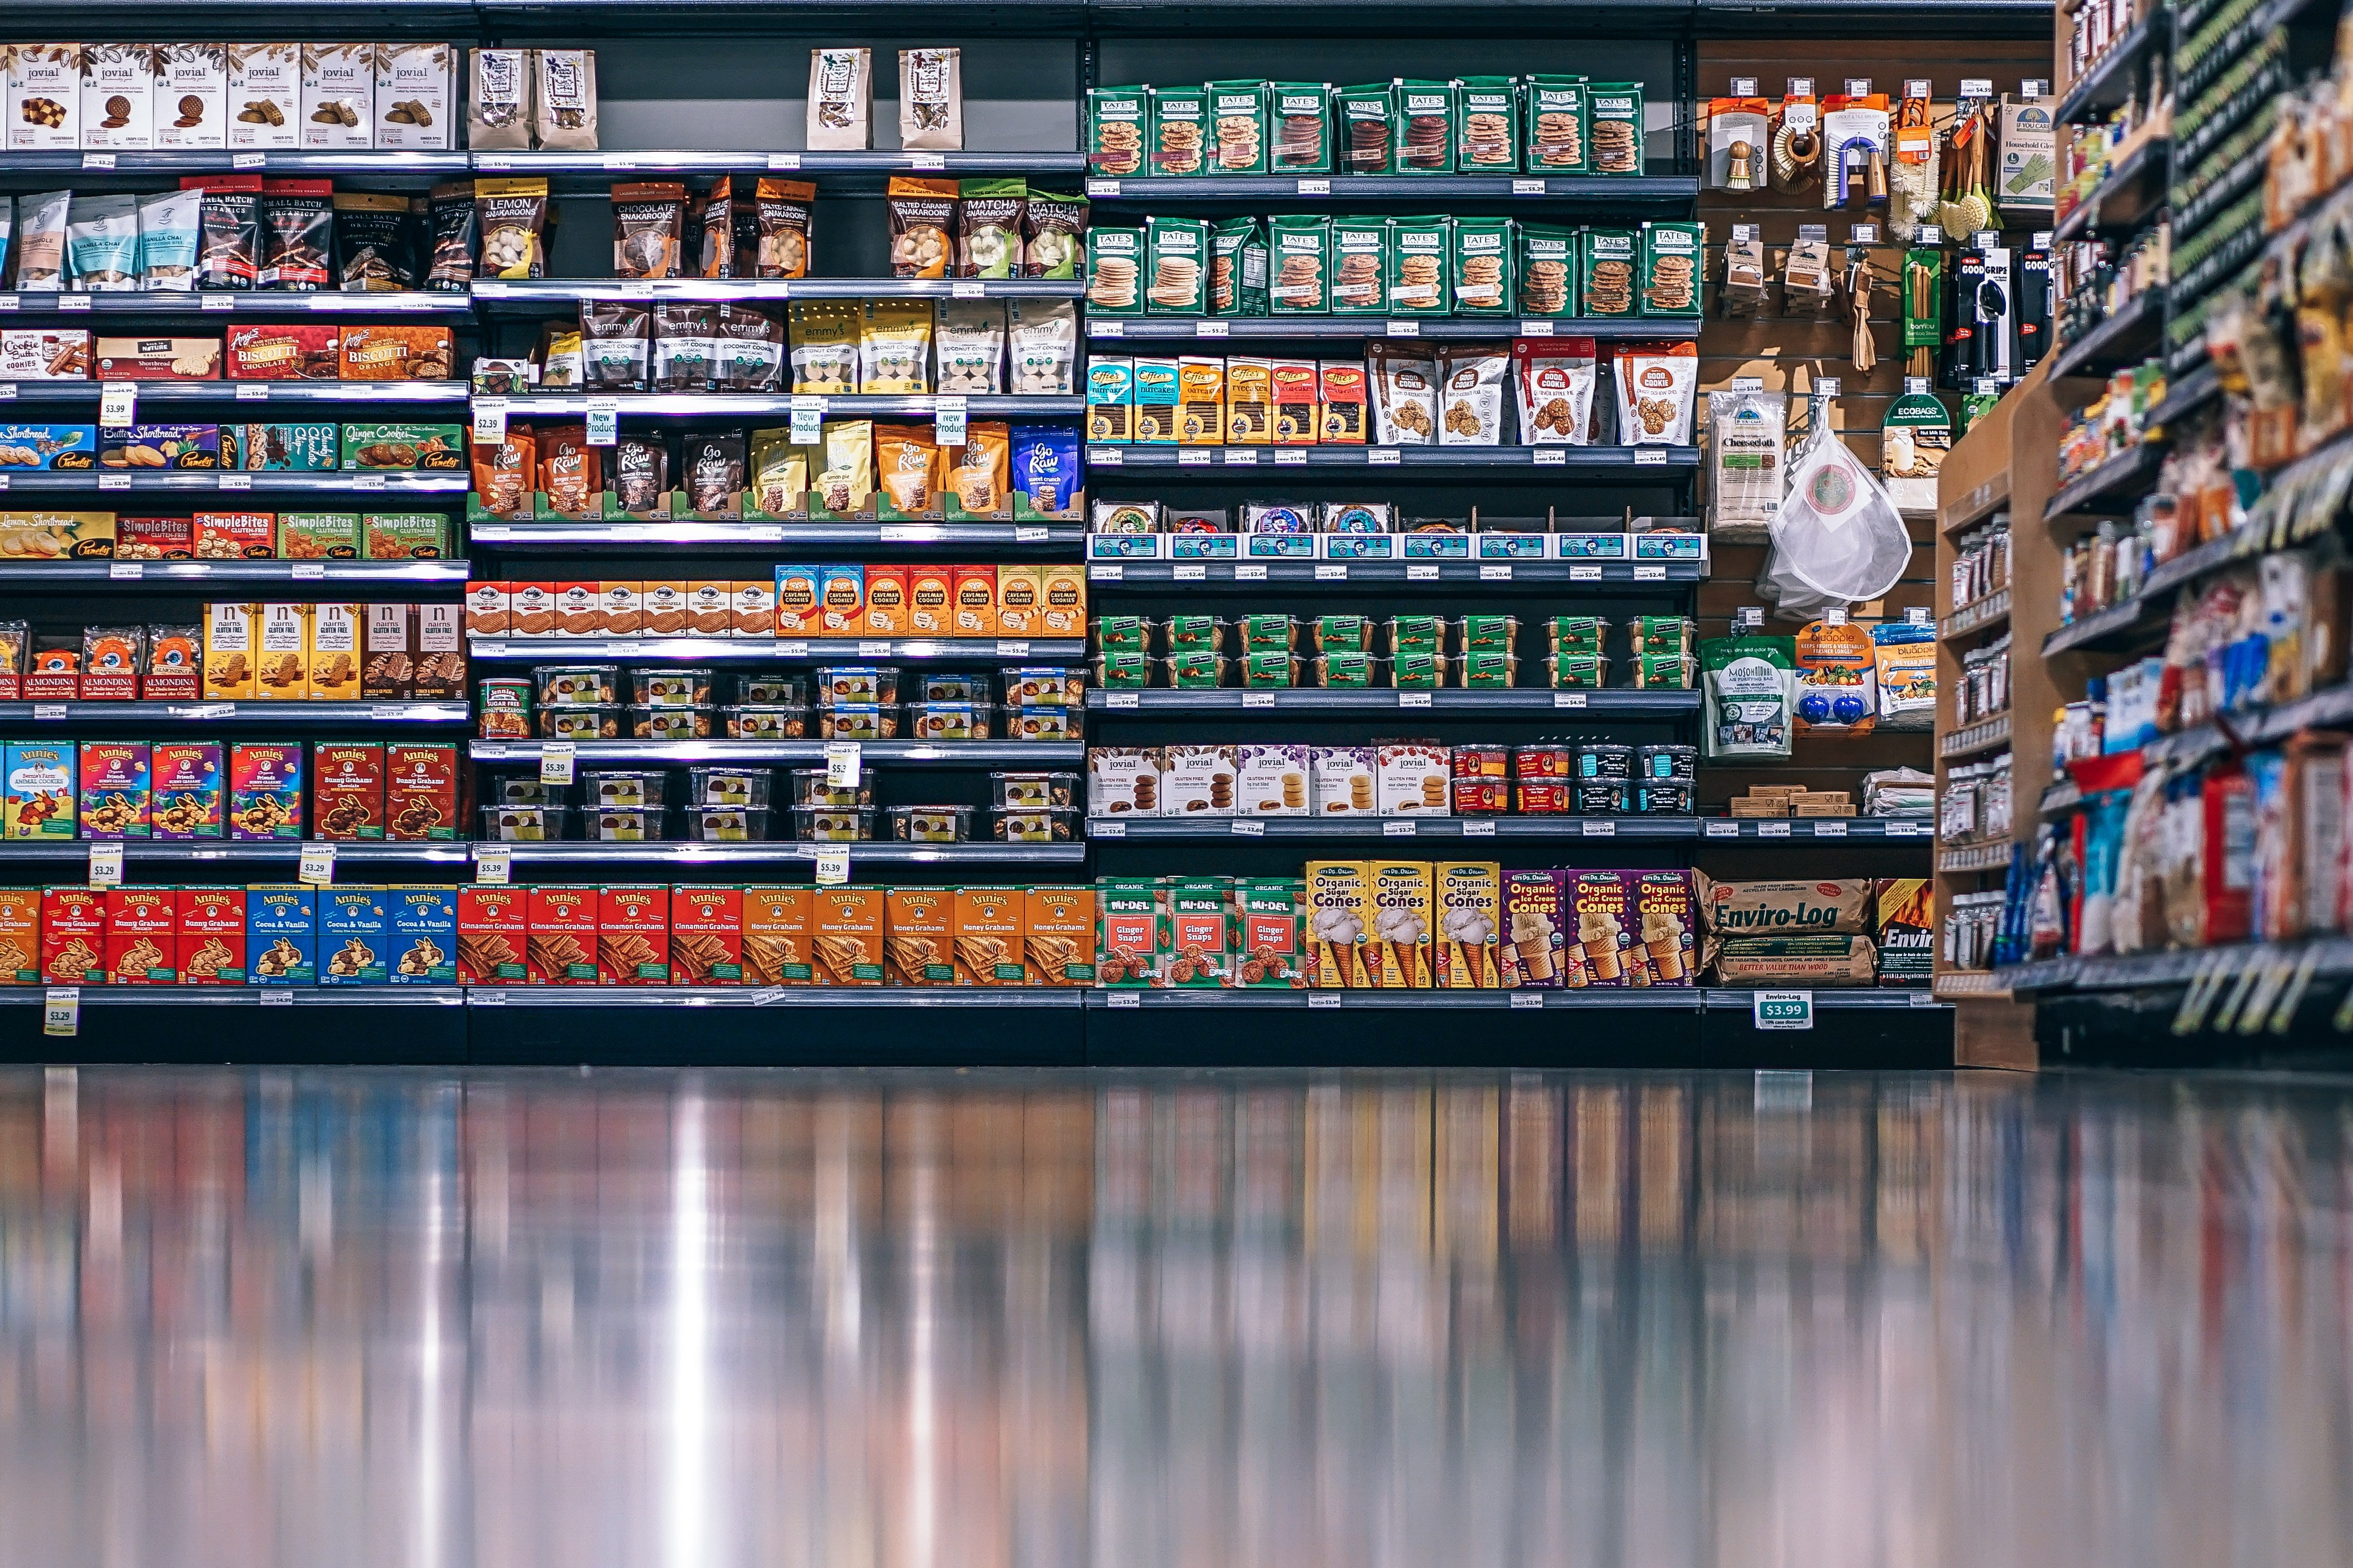 Why should all companies in retail sector analyze its product data management process?